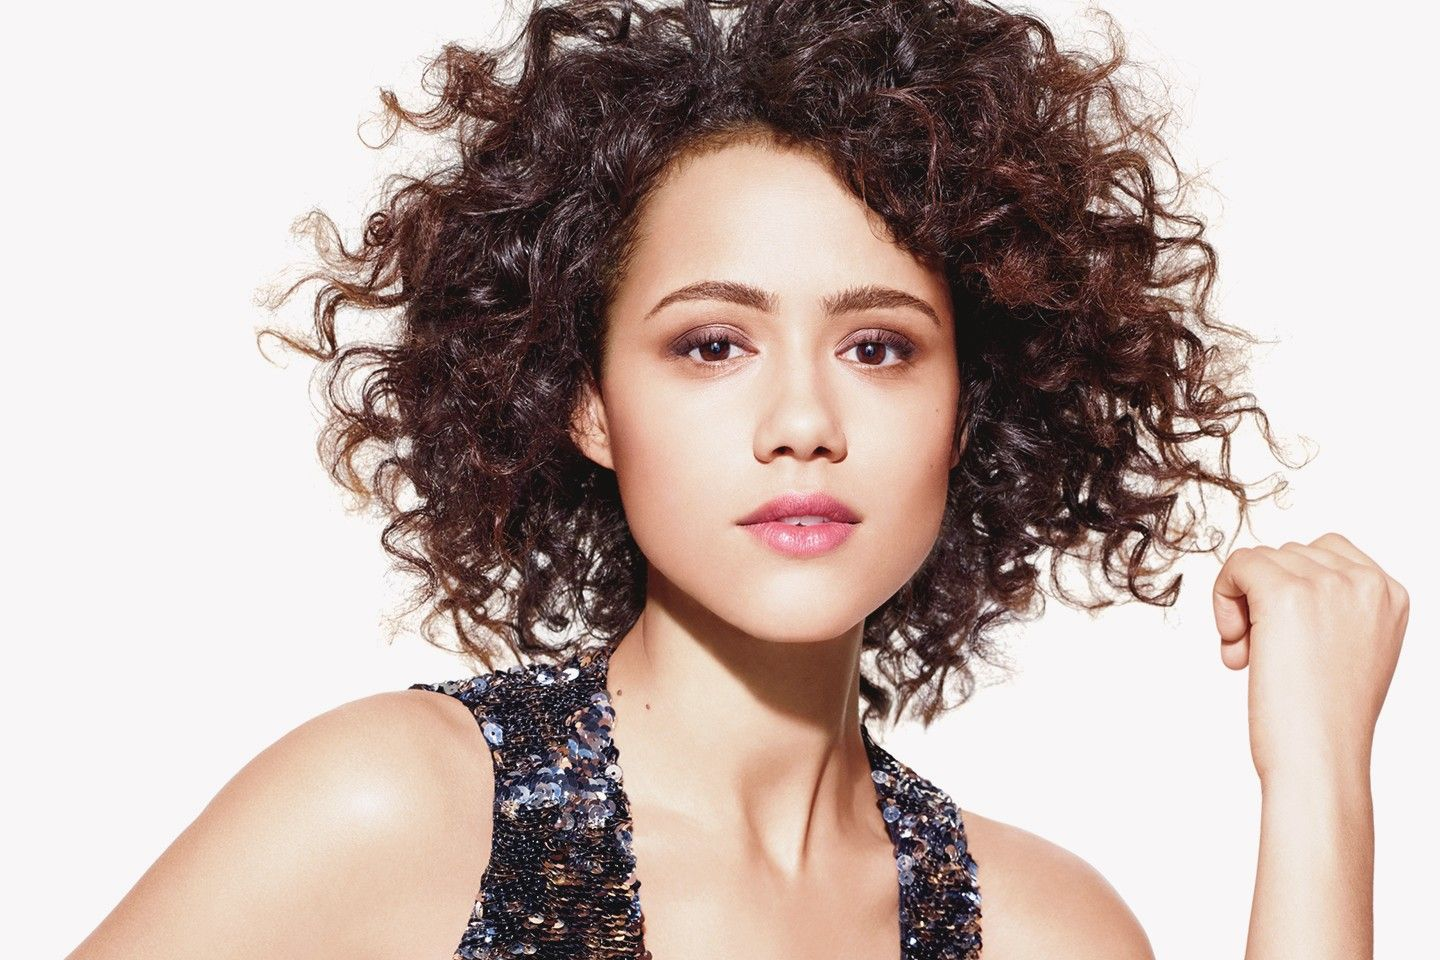 Nathalie Emmanuel Wallpapers